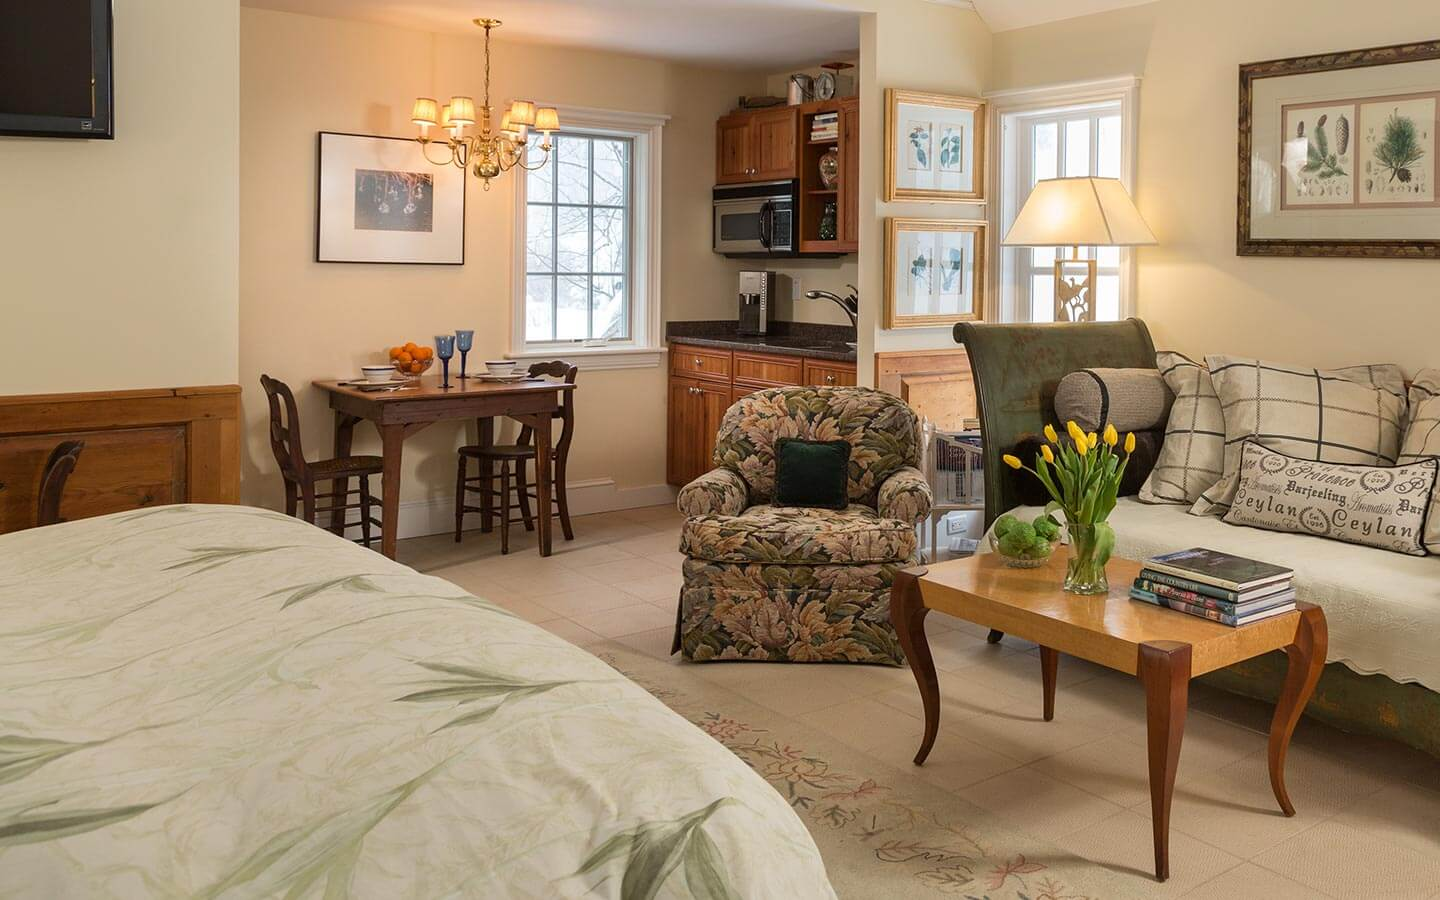 Vermont Getaways :: Lovely Cottage near Killington, VT